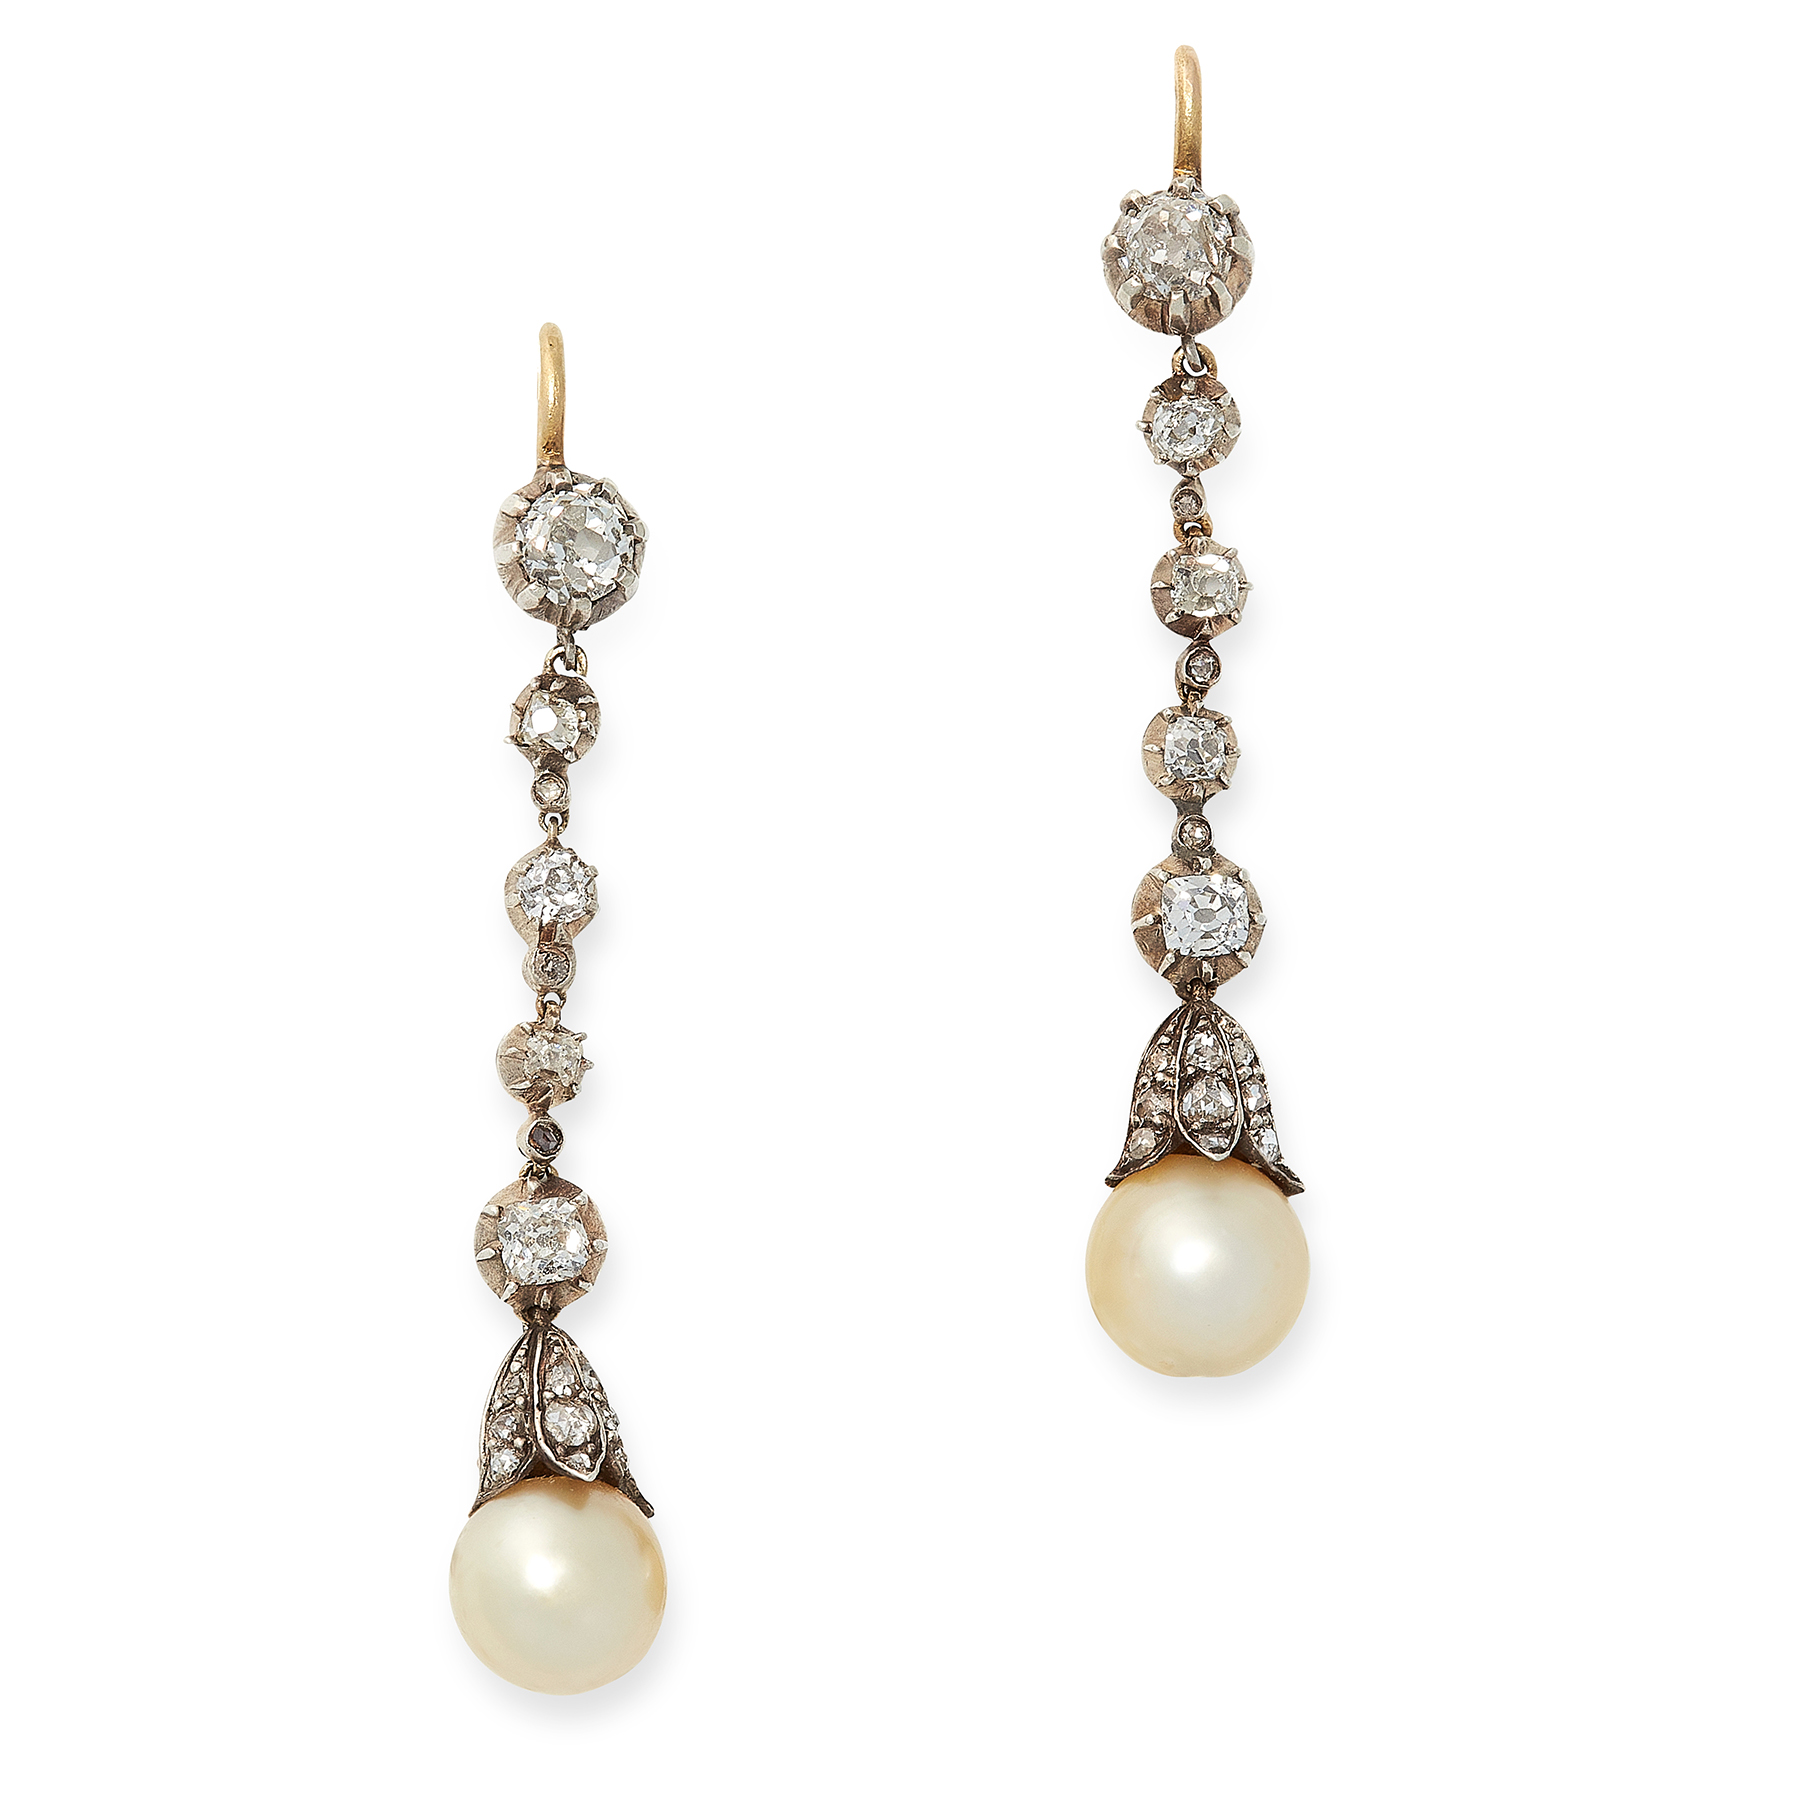 Lot 49 - A PAIR OF NATURAL PEARL AND DIAMOND DROP EARRINGS in yellow gold and silver, each designed as a drop